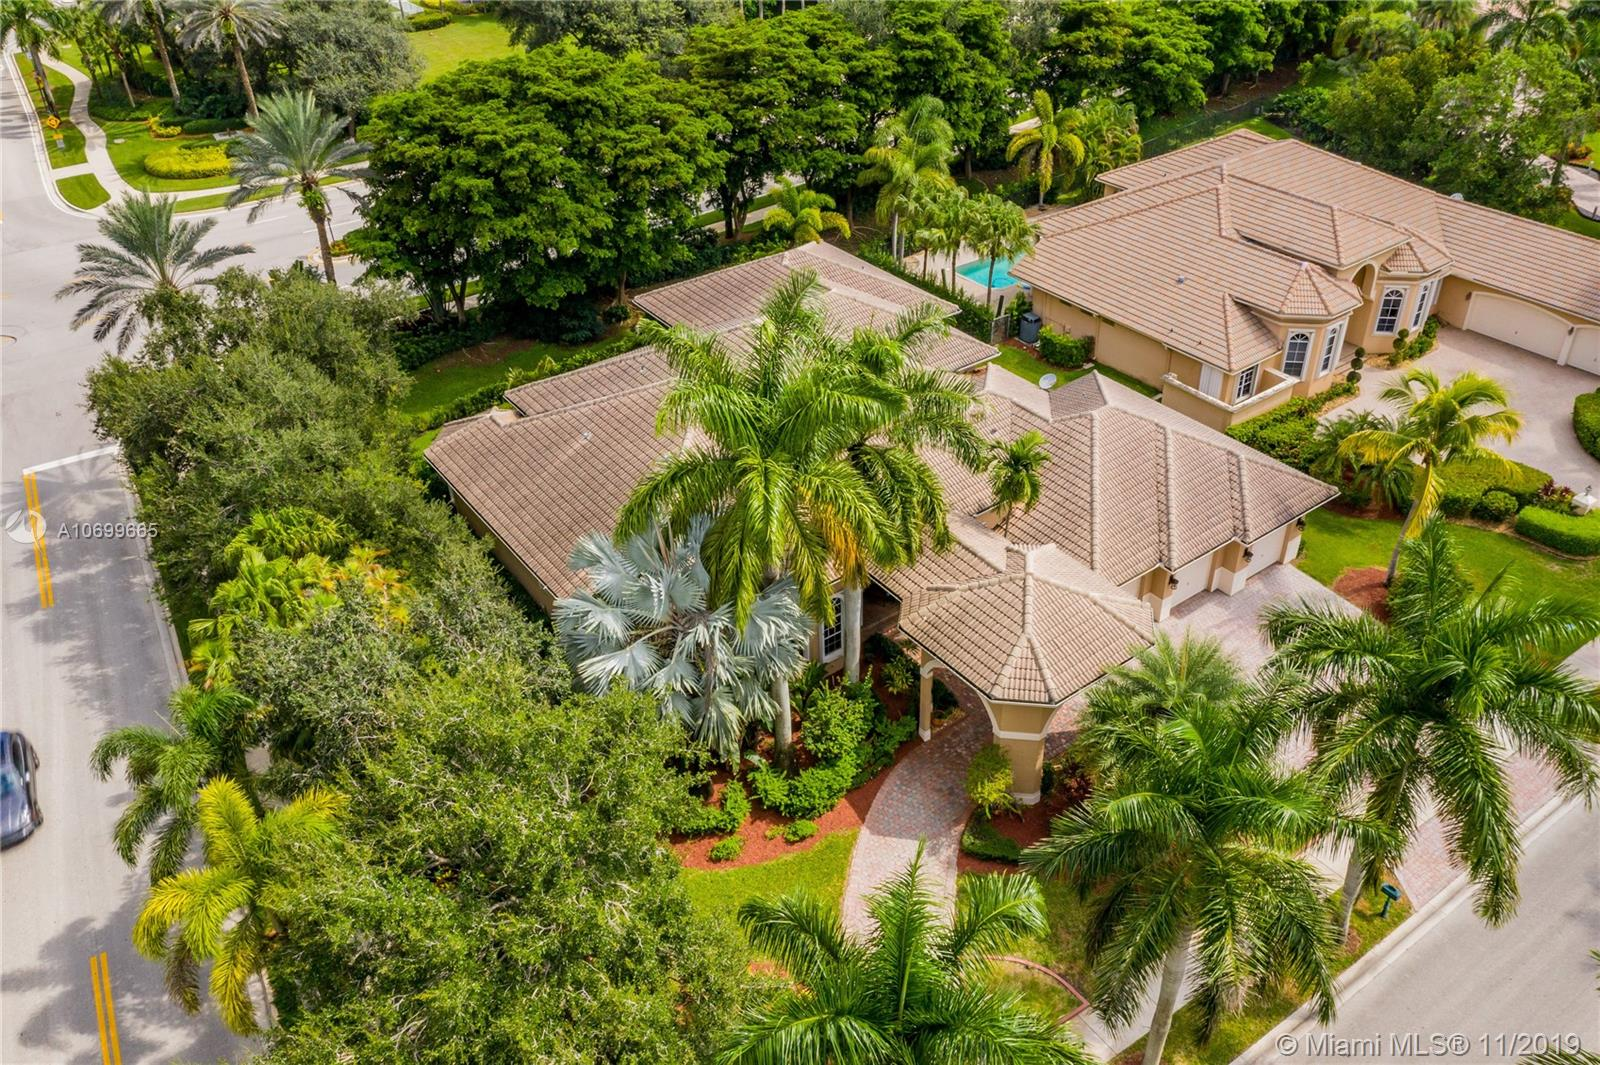 A TRUE WESTON TREASURE. CUSTOM BUILT BY ANTIQUE DEALER TO SHOWCASE GLOBAL TREASURES. GATED WESTON HILLS COUNTRY CLUB. PULL UP TO PAVERED PORTE-COCHERE OR PARK IN 1 OF 3 GARAGES. STEP DOWN FOYER ENTRY TO MARBLE FLOORS, CROWN MOLDING & COLUMNS IMPORTED FROM ITALY. 15,500+SF CORNER LOT, W/NEW LUSH LANDSCAPING THAT'LL MATURE TO TRU PRIVACY. 4BR/5.5BA/OFFICE HOME WITH 4300SF+SF & 12-16' CEILINGS. MAIN LIVING AREAS & KITCHEN JUST PAINTED WHITE.  MOTORIZED BLINDS BEING INSTALLED. CHEF'S KITCHEN- DBL OVEN/GAS RANGE & 250 GAL TANK & WALK-IN PANTRY. MASTER SUITE W/2 WALK-IN CLOSETS W/BUILT-INS, OFFICE/GYM AREA-HIS & HER BATHROOMS, JACUZZI, 2-ENTRY, MULTI-HEADS SHOWER, LAPIS GRANITE COUNTERS,VANITY AREA. 2ND MASTER OTHER SIDE. IN-LAW SUITE W/GARAGE ENTRY. WET BAR. 3AC/2H2O HEATERS.